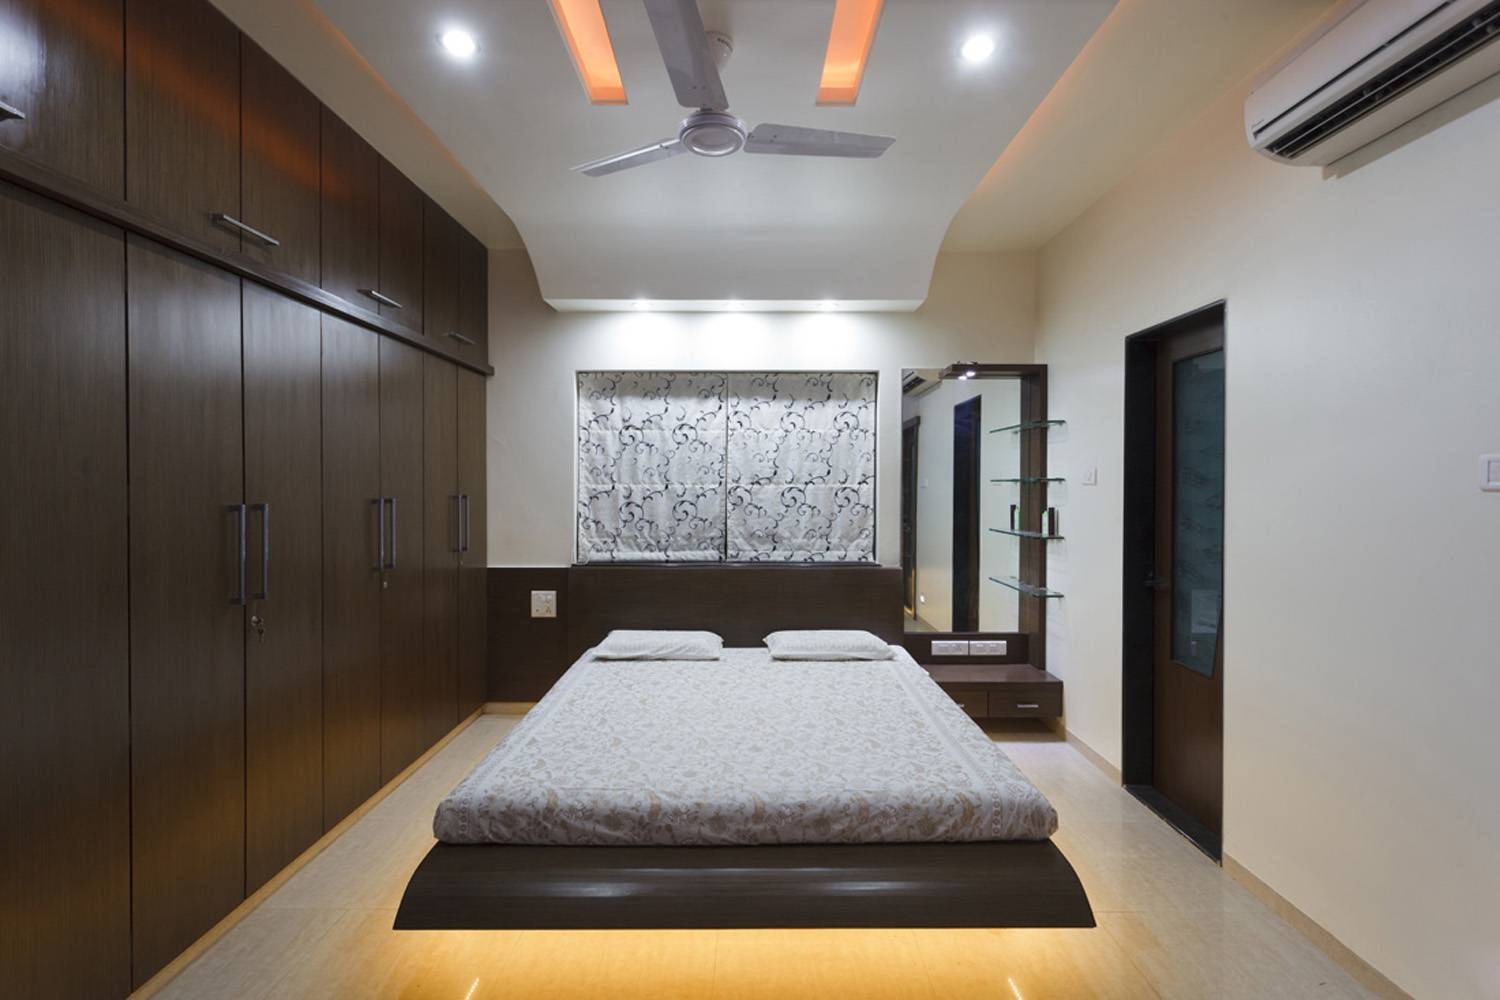 Bed room interior design portfolio leading interior for Interior design ideas